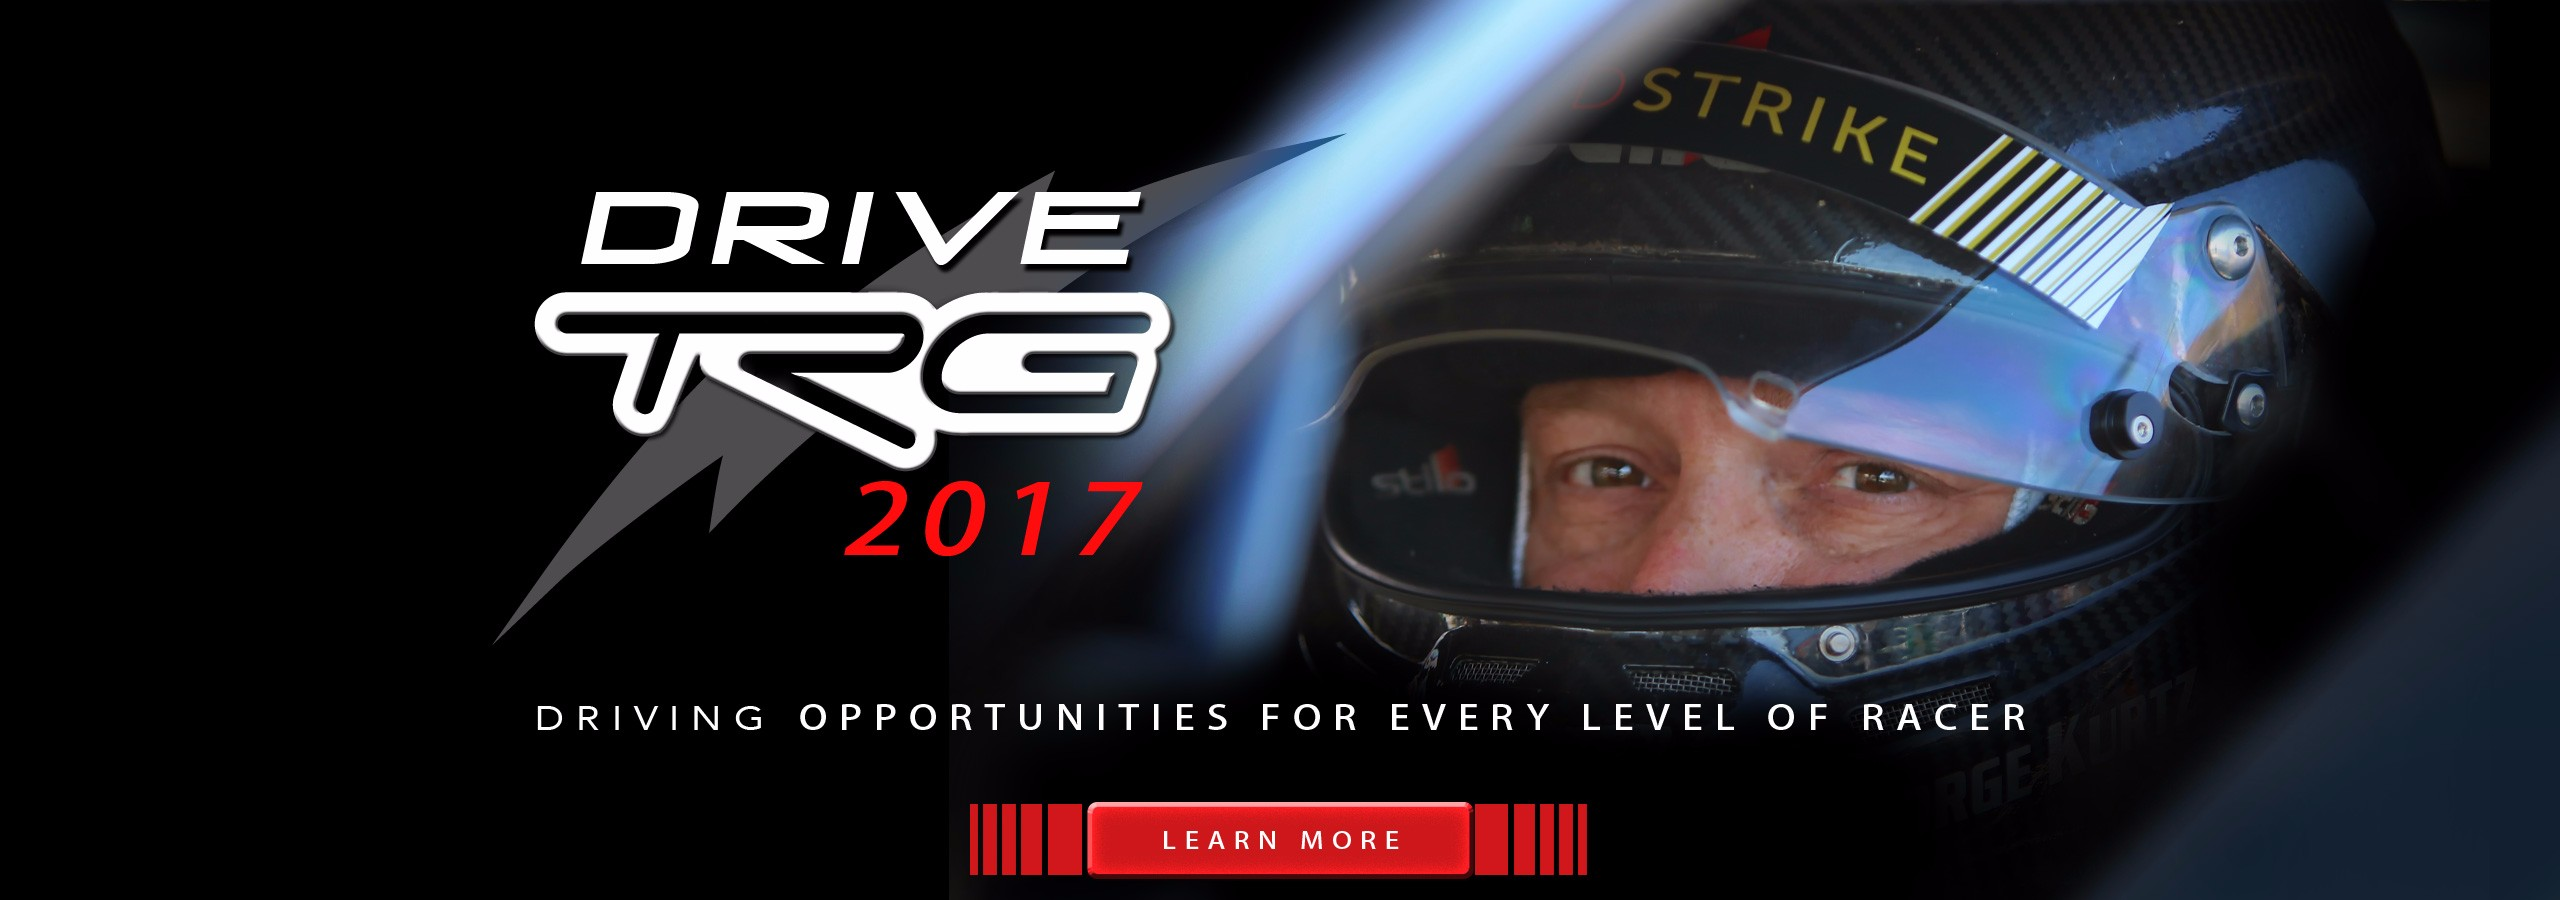 Racecar Driver, Driving Opportunities, Pro Team, Clubsport, Testing Track Days for 2017 season